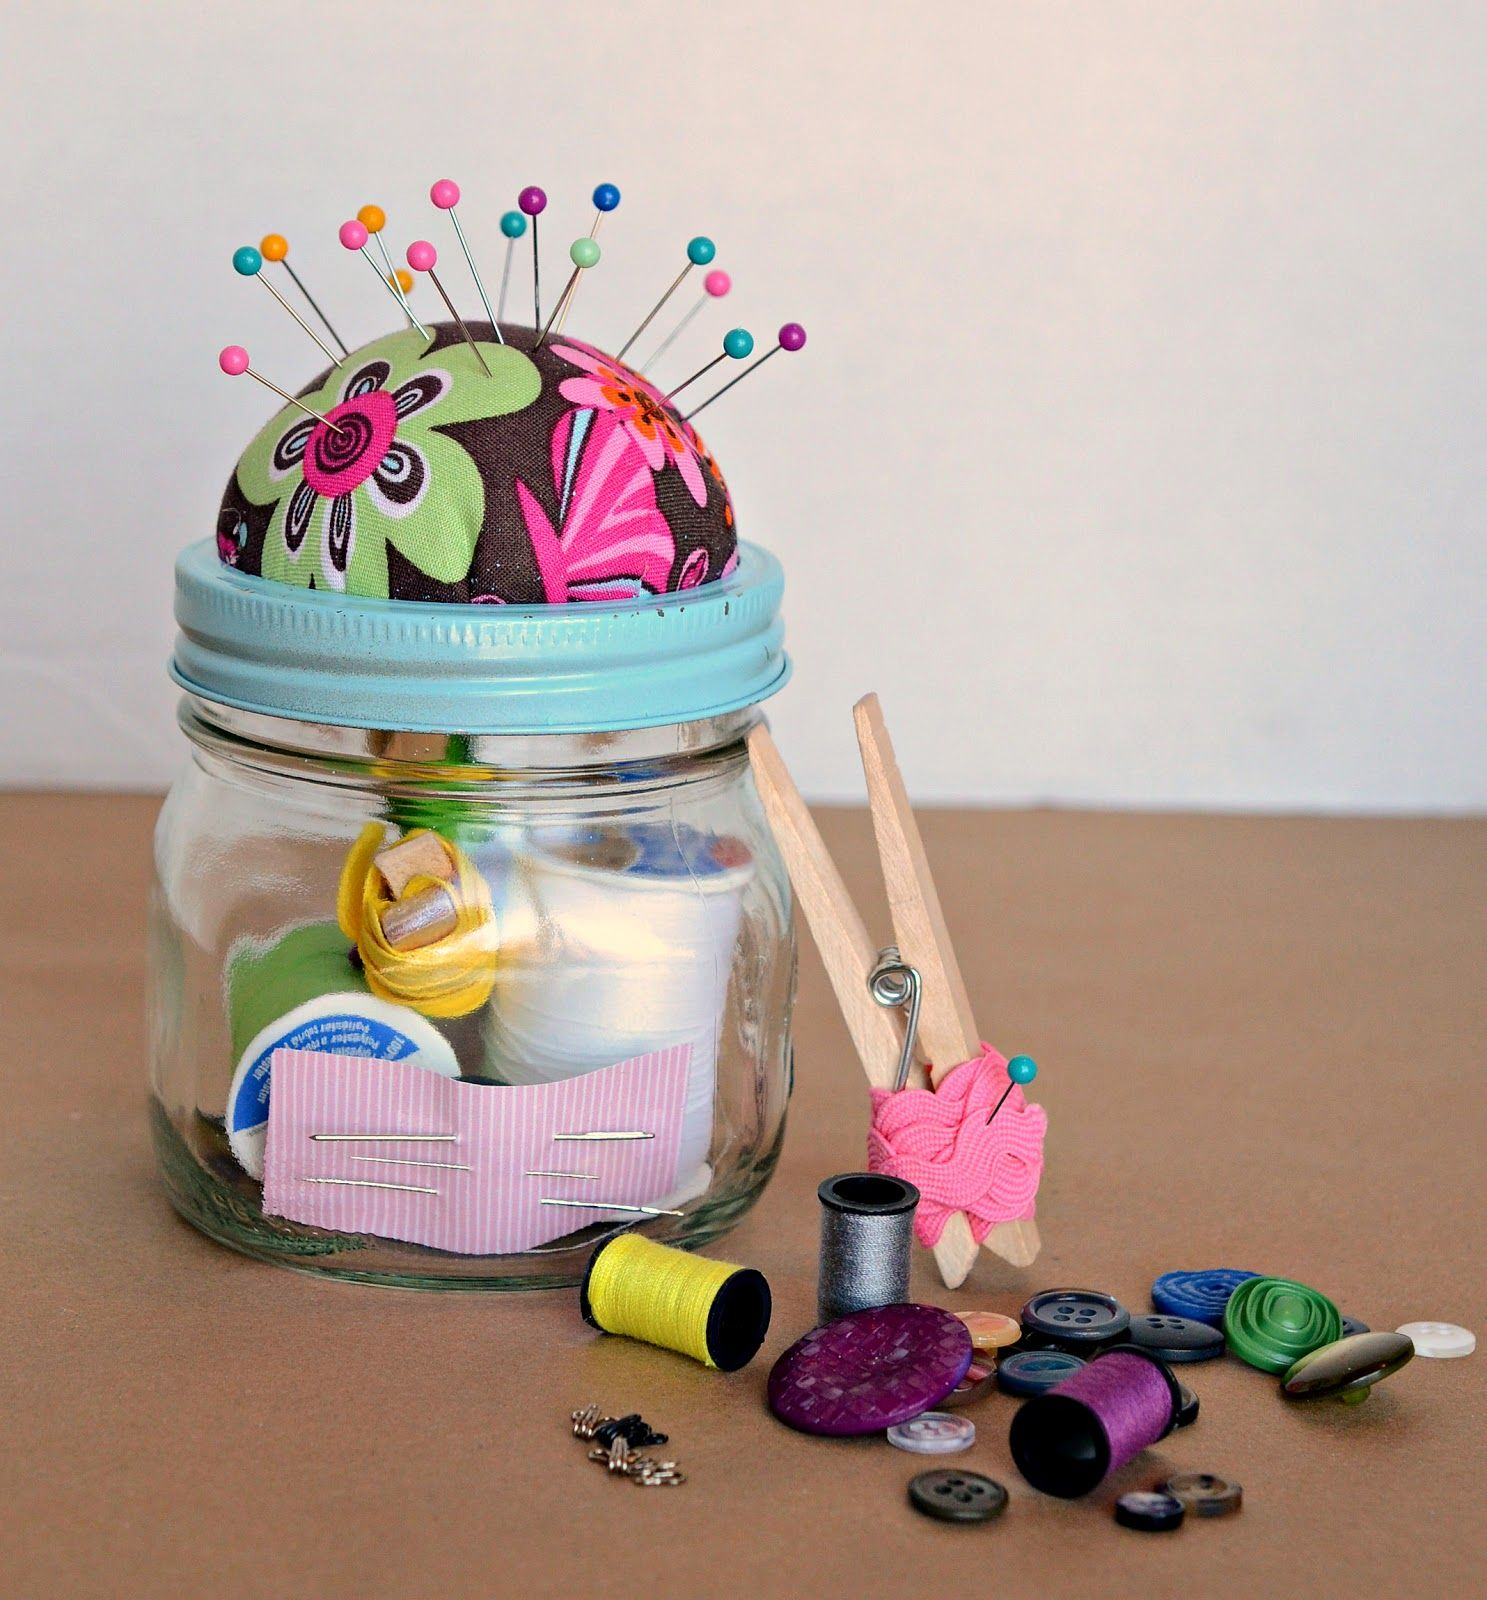 Diy sewing kit gift in a jar jar crafts and gift diy sewing kit gift in a jar negle Choice Image